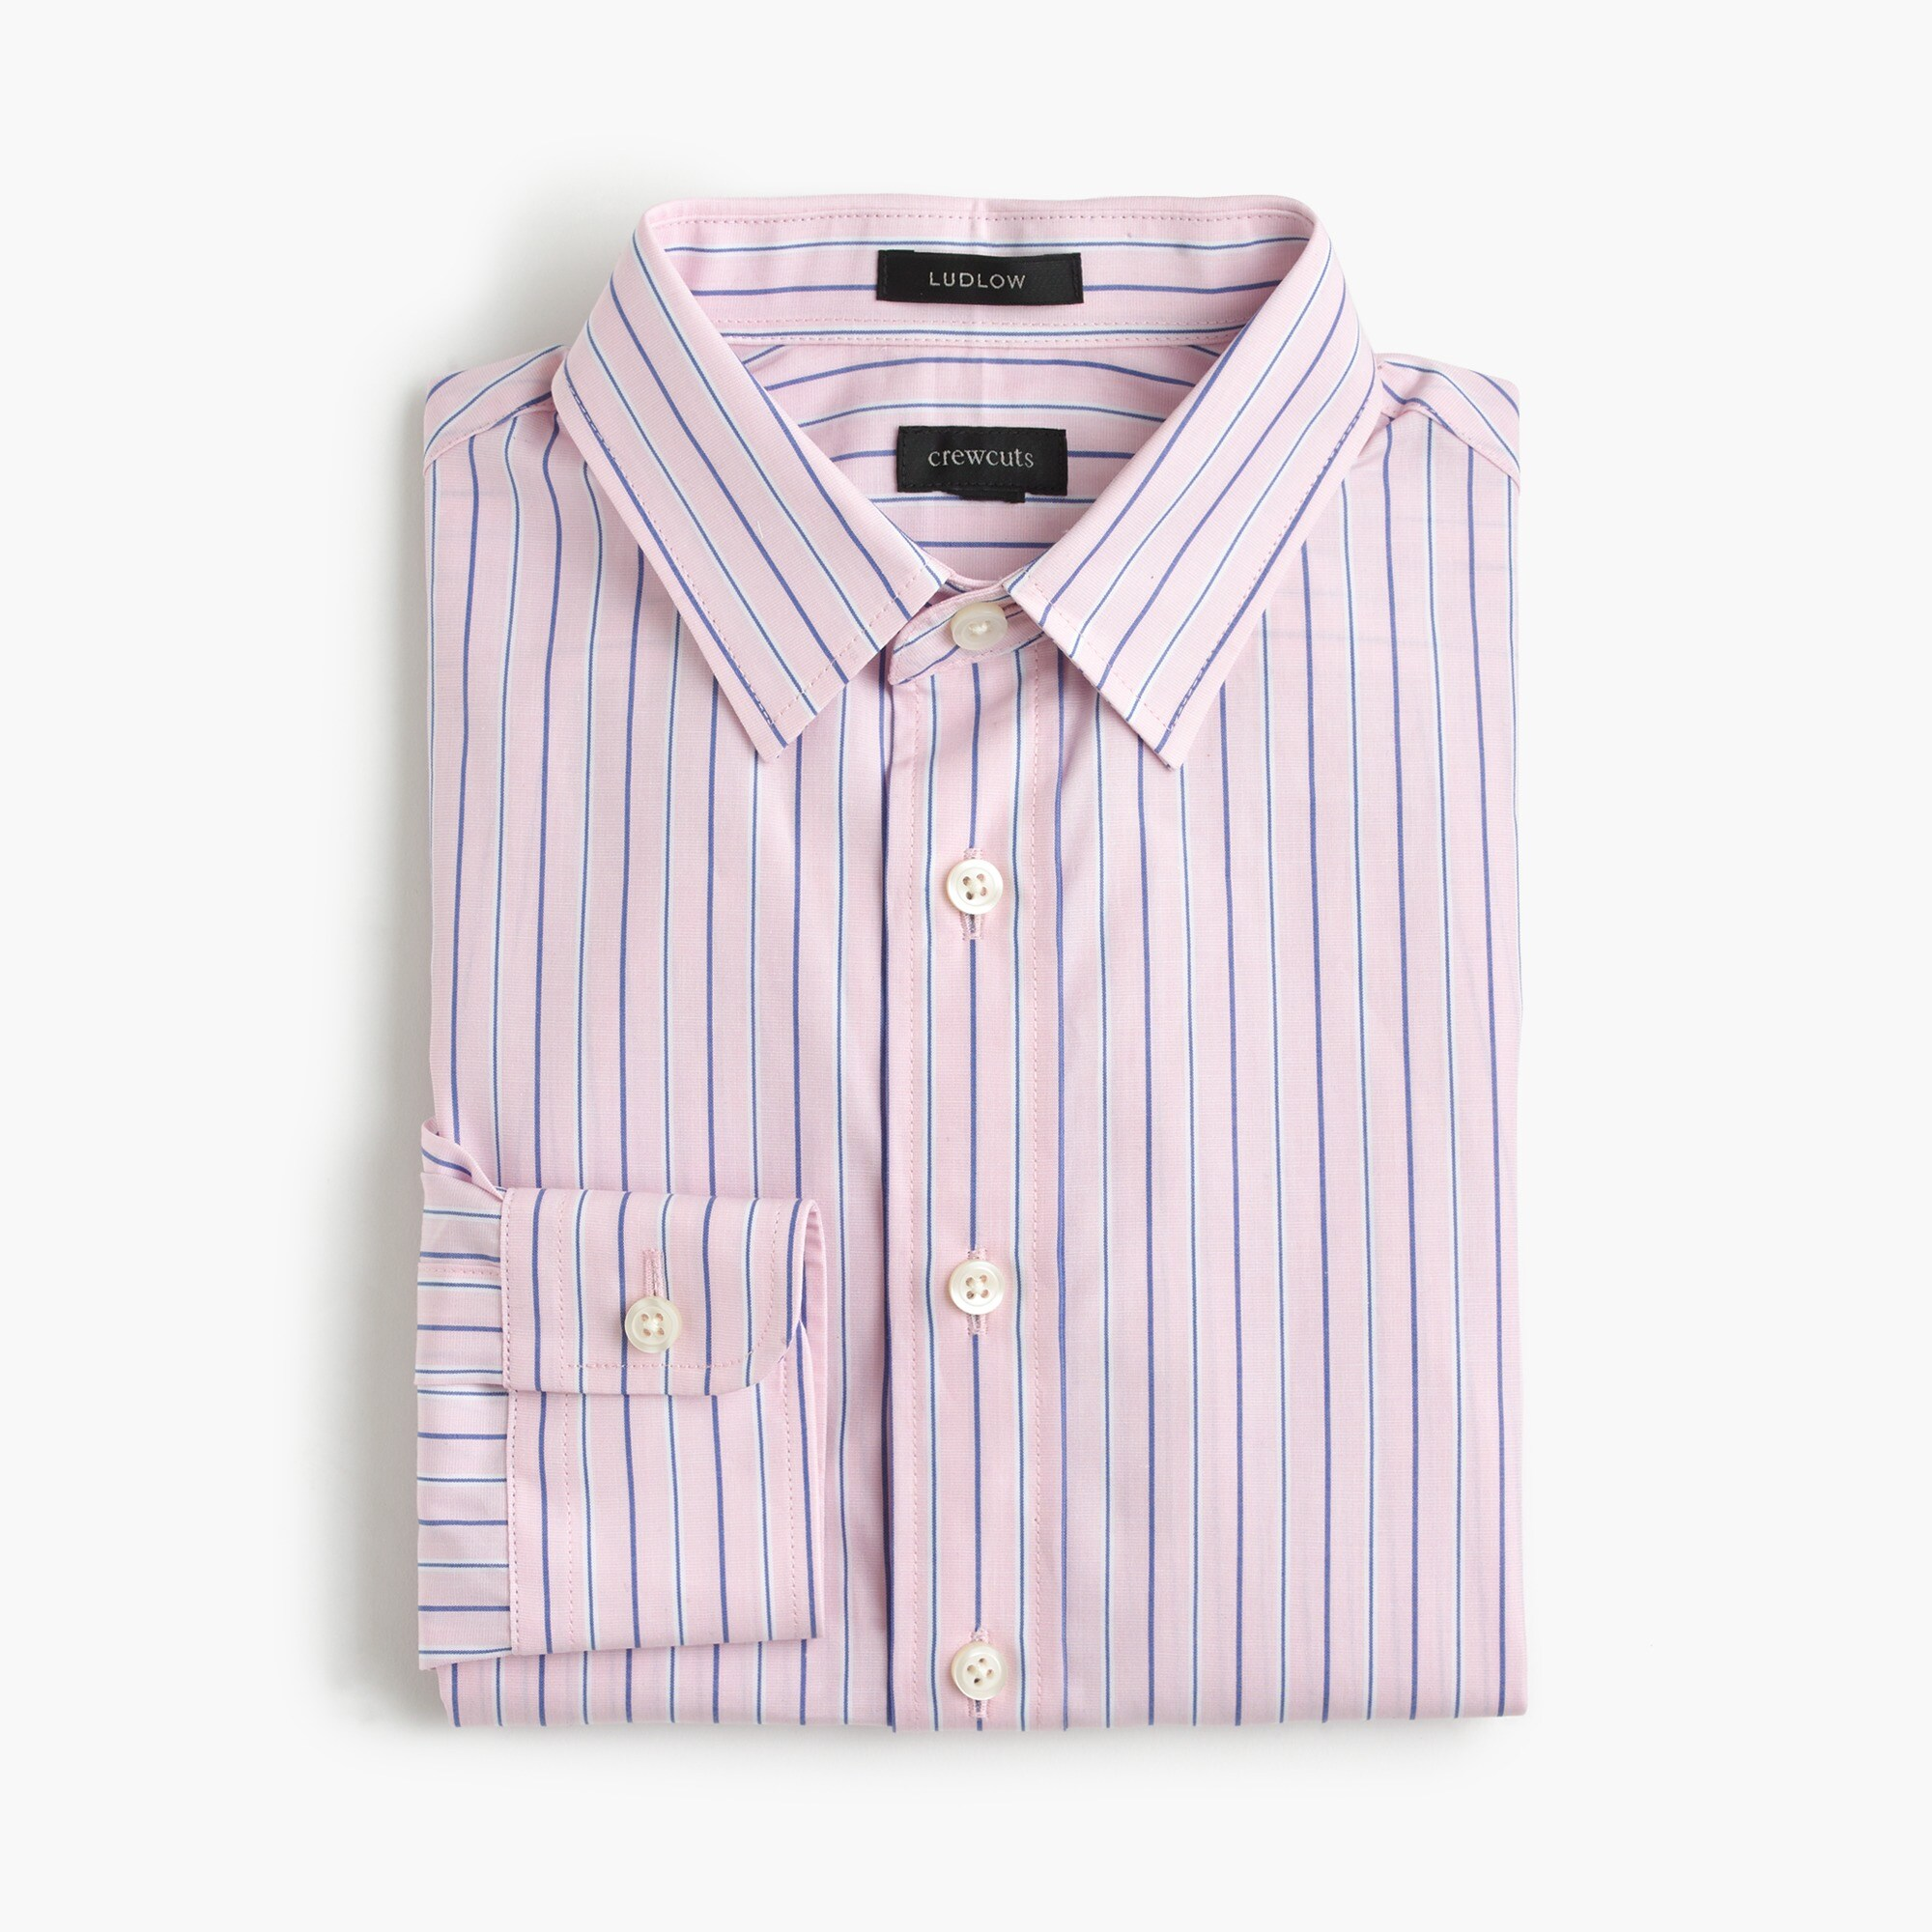 Boys' Ludlow shirt boy new arrivals c